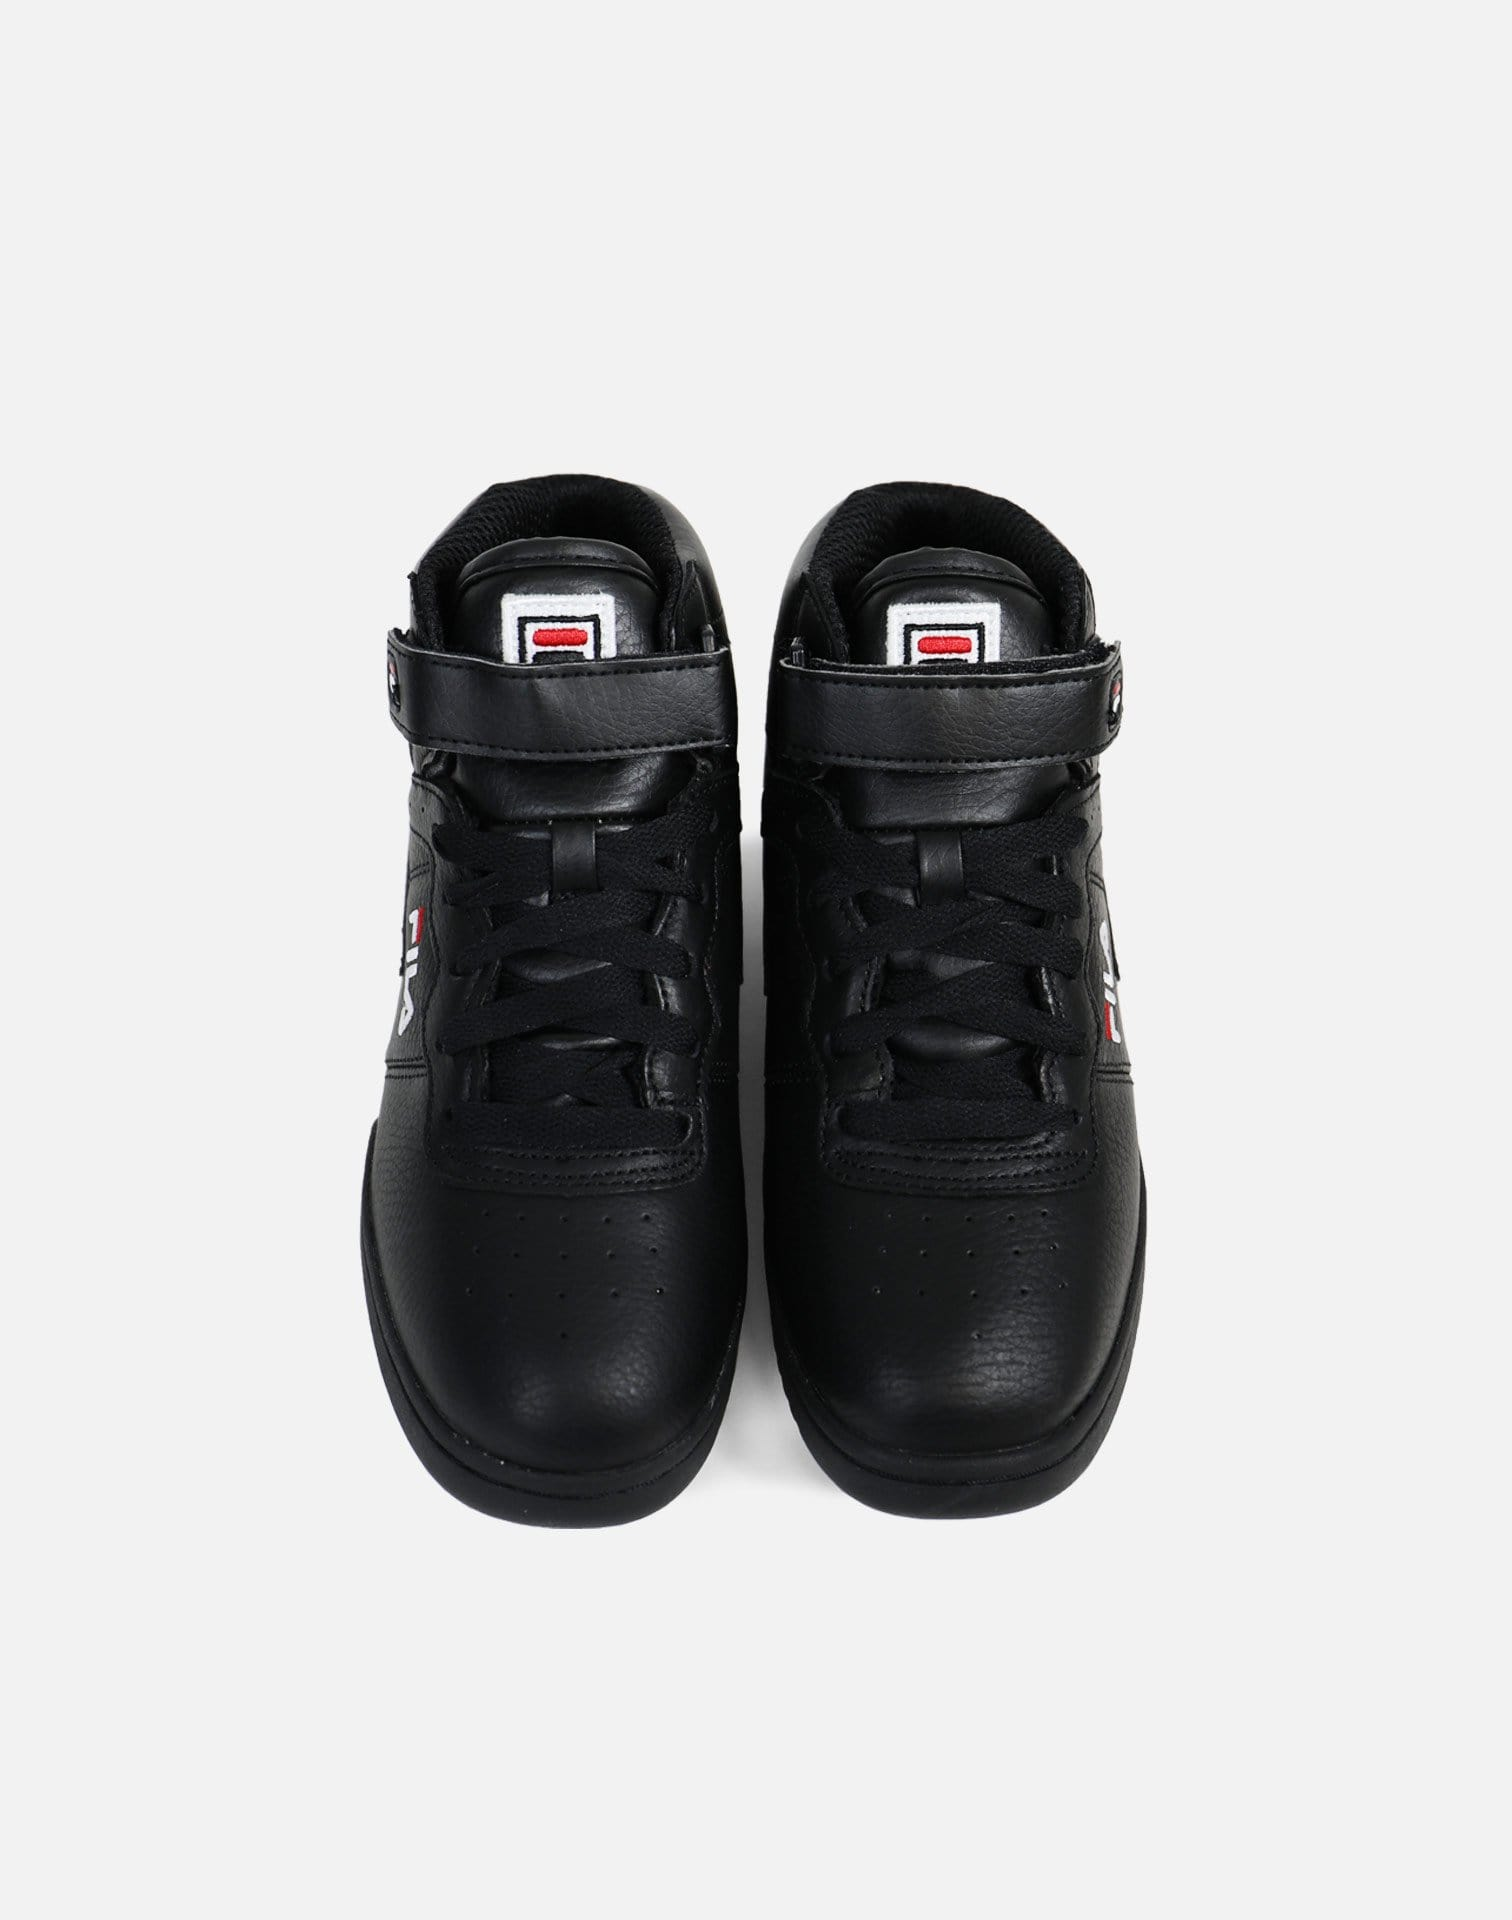 Fila F-13 High Grade-School (Black)